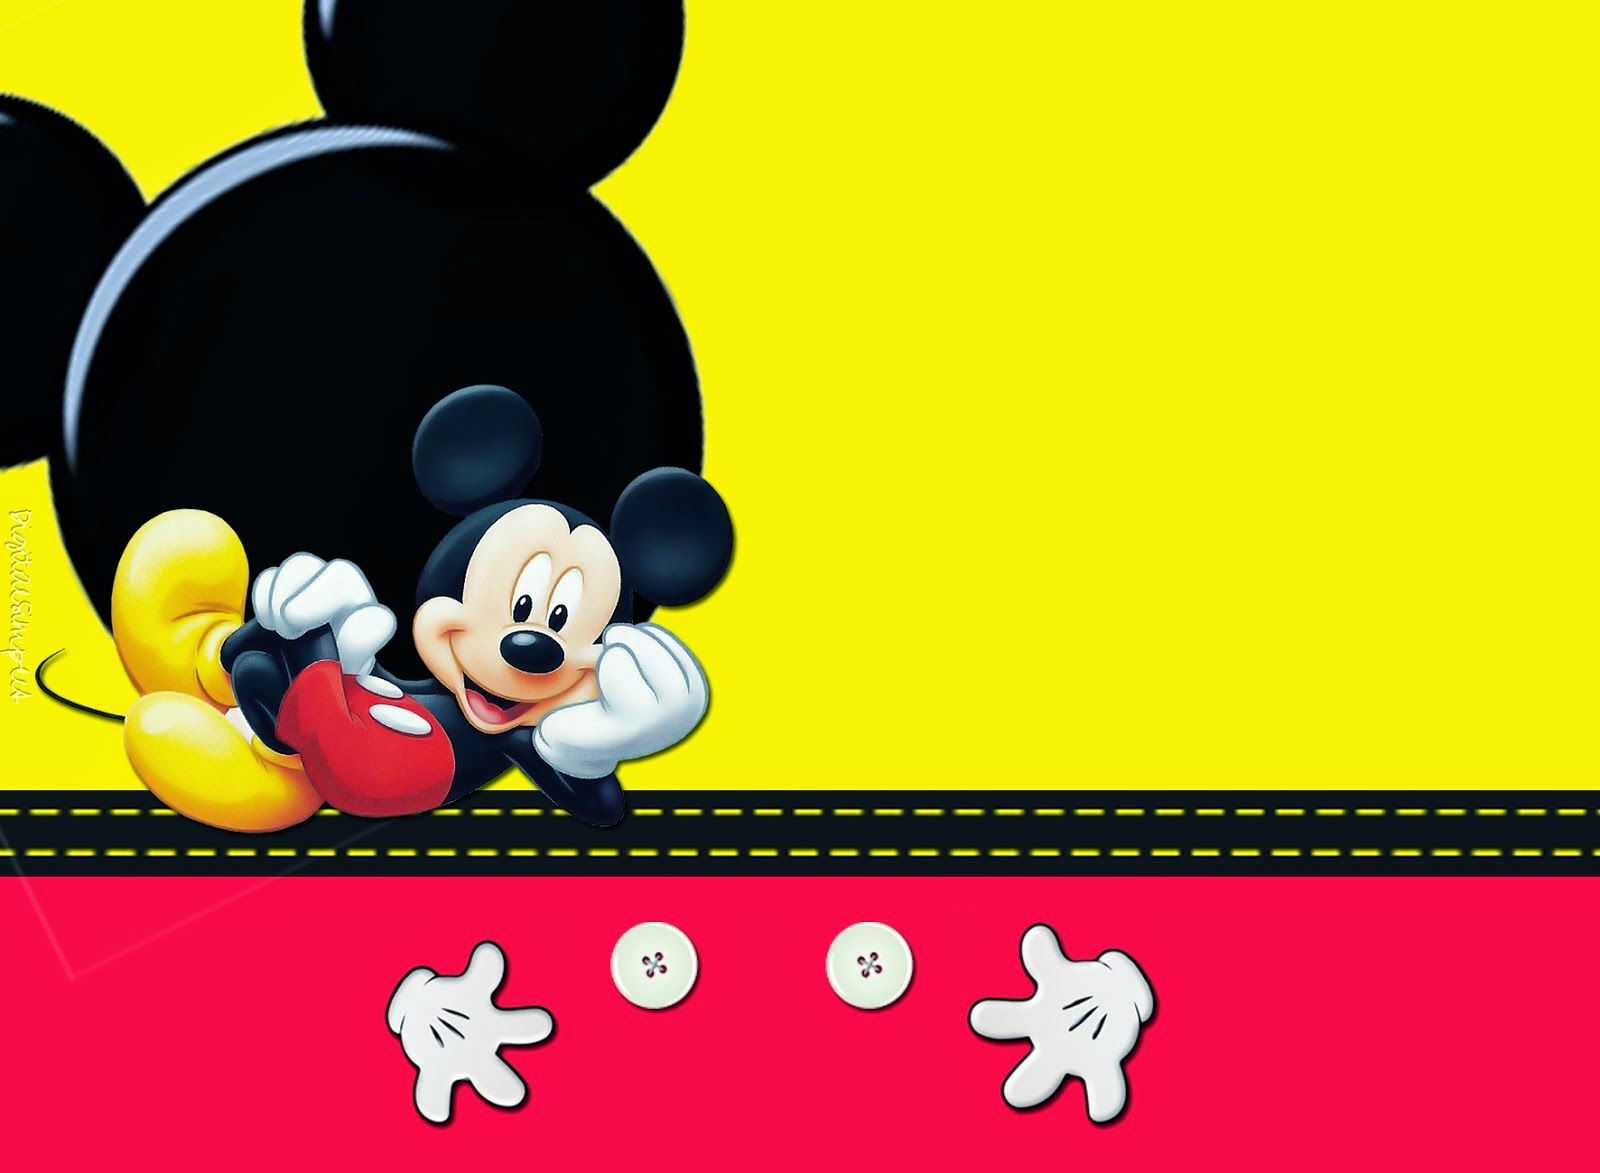 kit de mickey en rojo y amarillo para imprimir gratis oh my is it is it cute has quality it´s here oh my fiesta in english mickey printable invitations